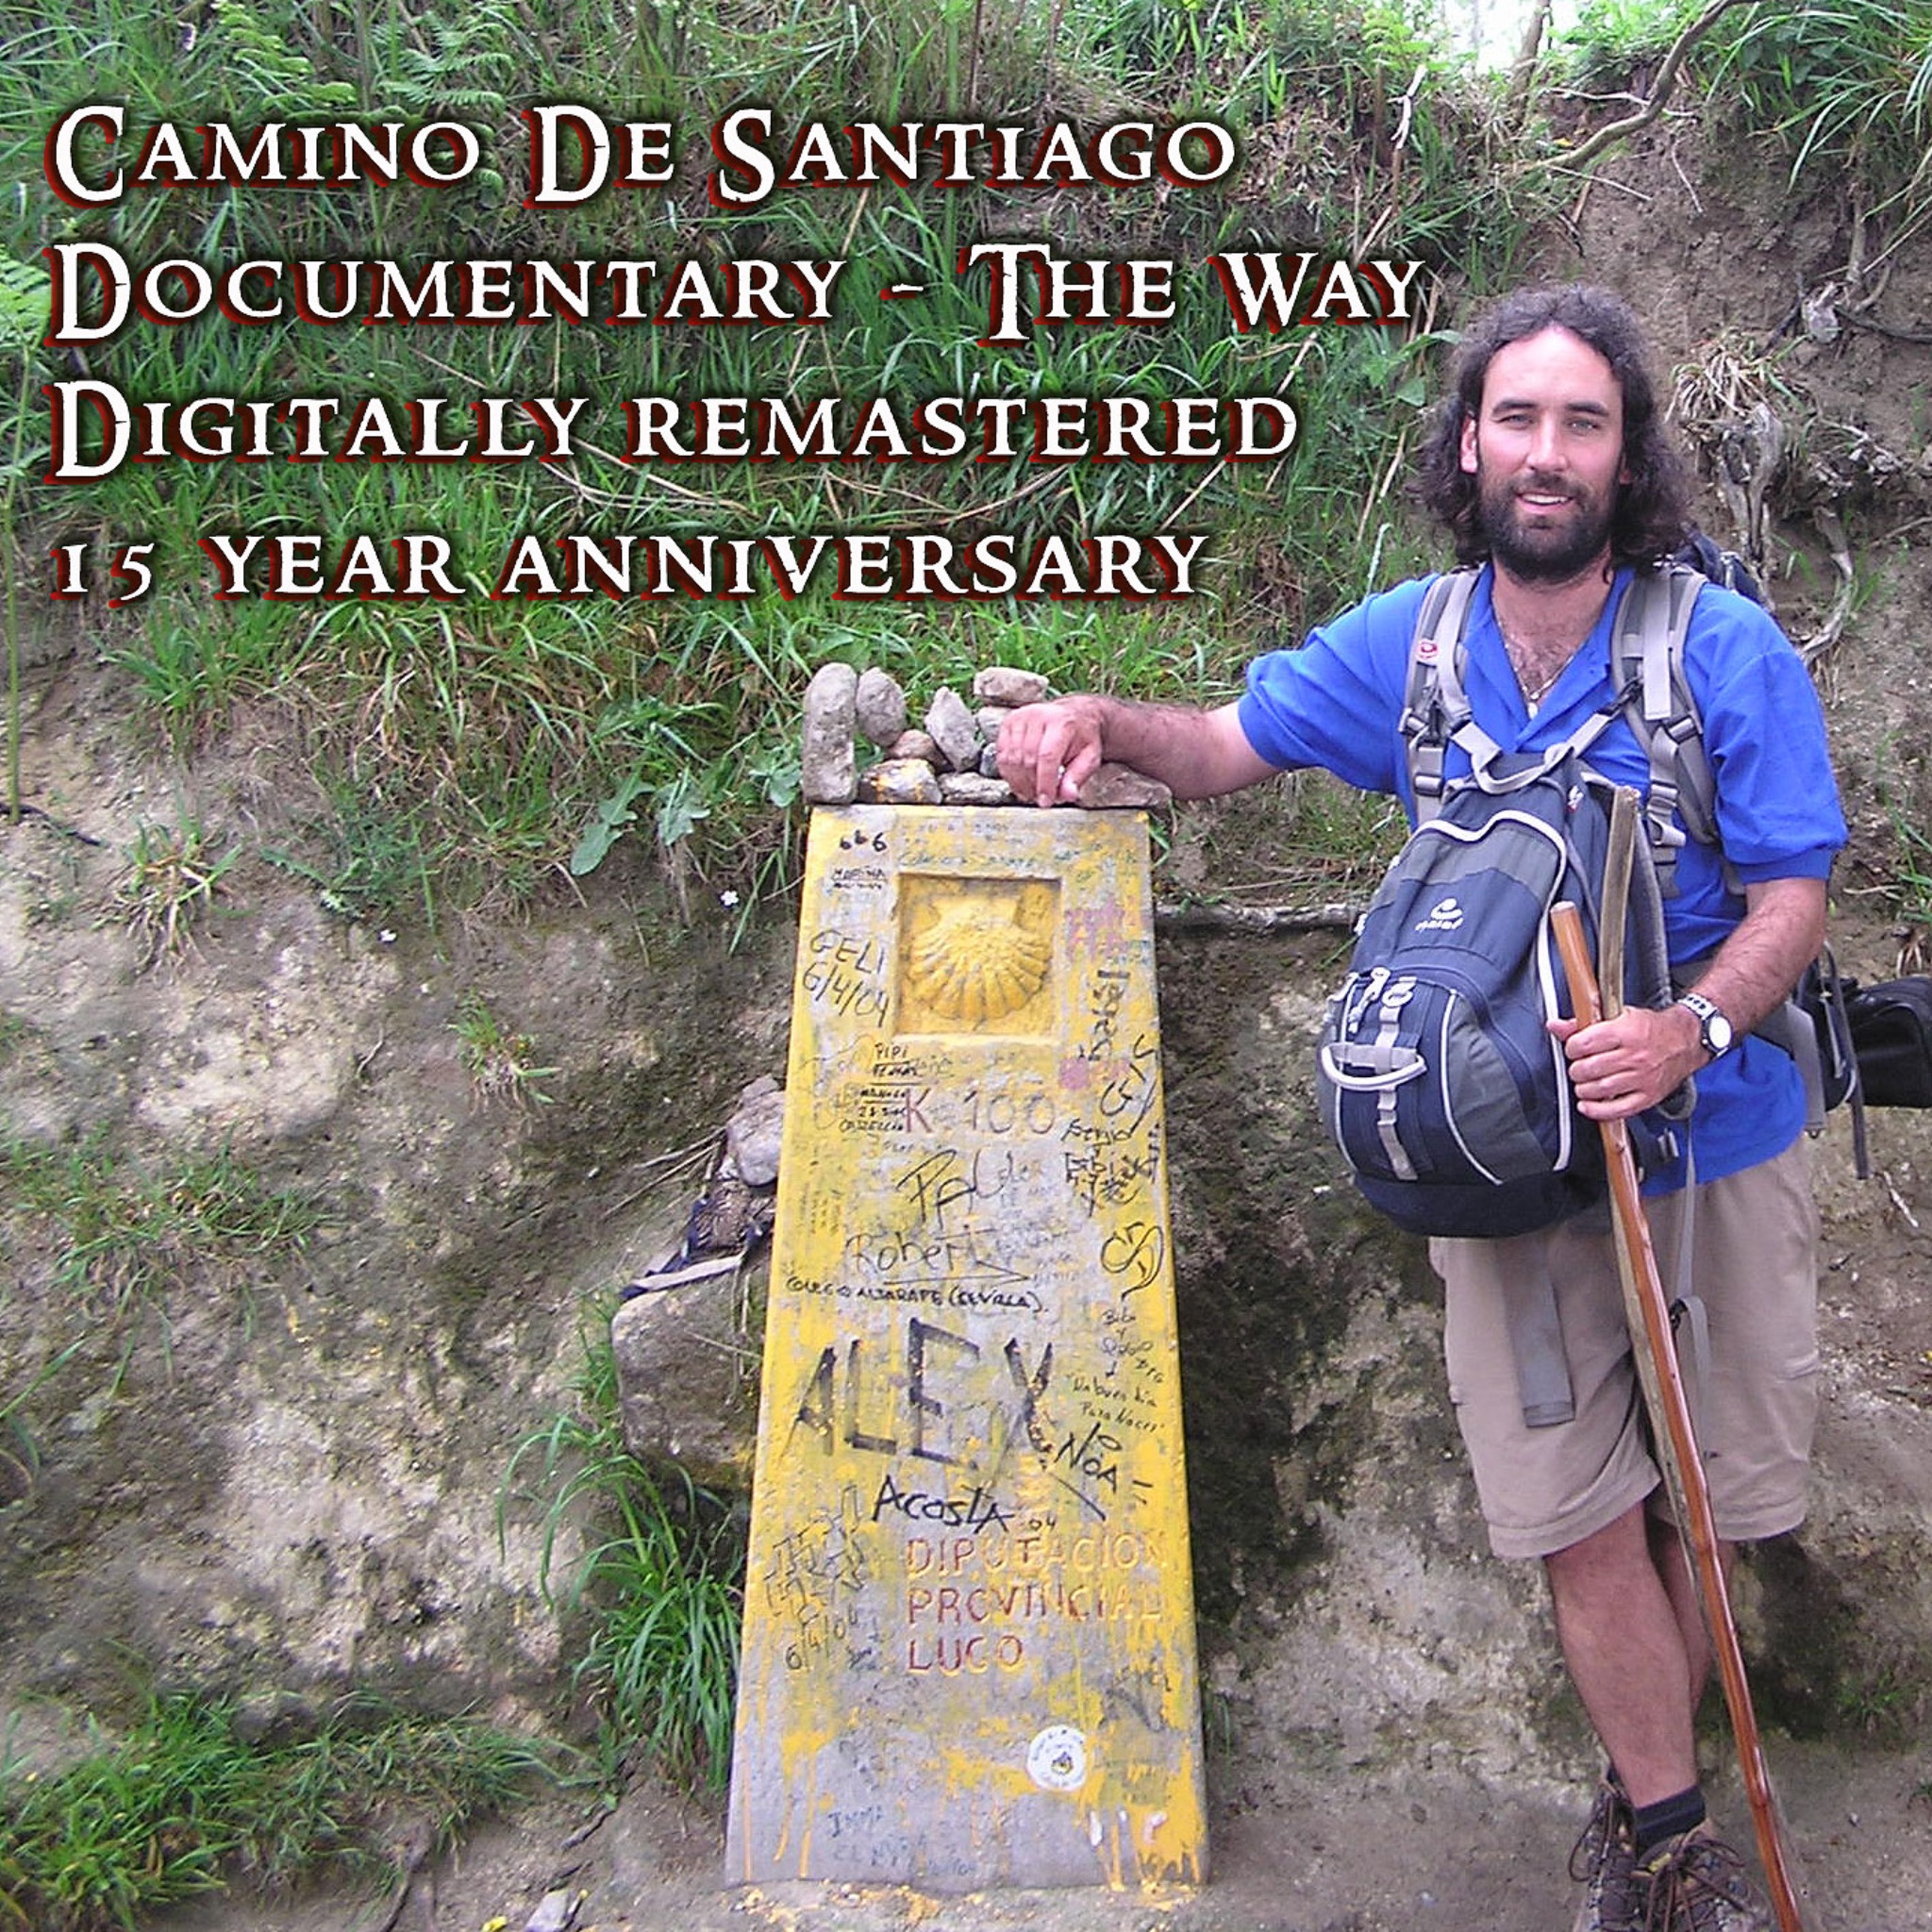 Camino De Santiago Documentary - The Way Remastered